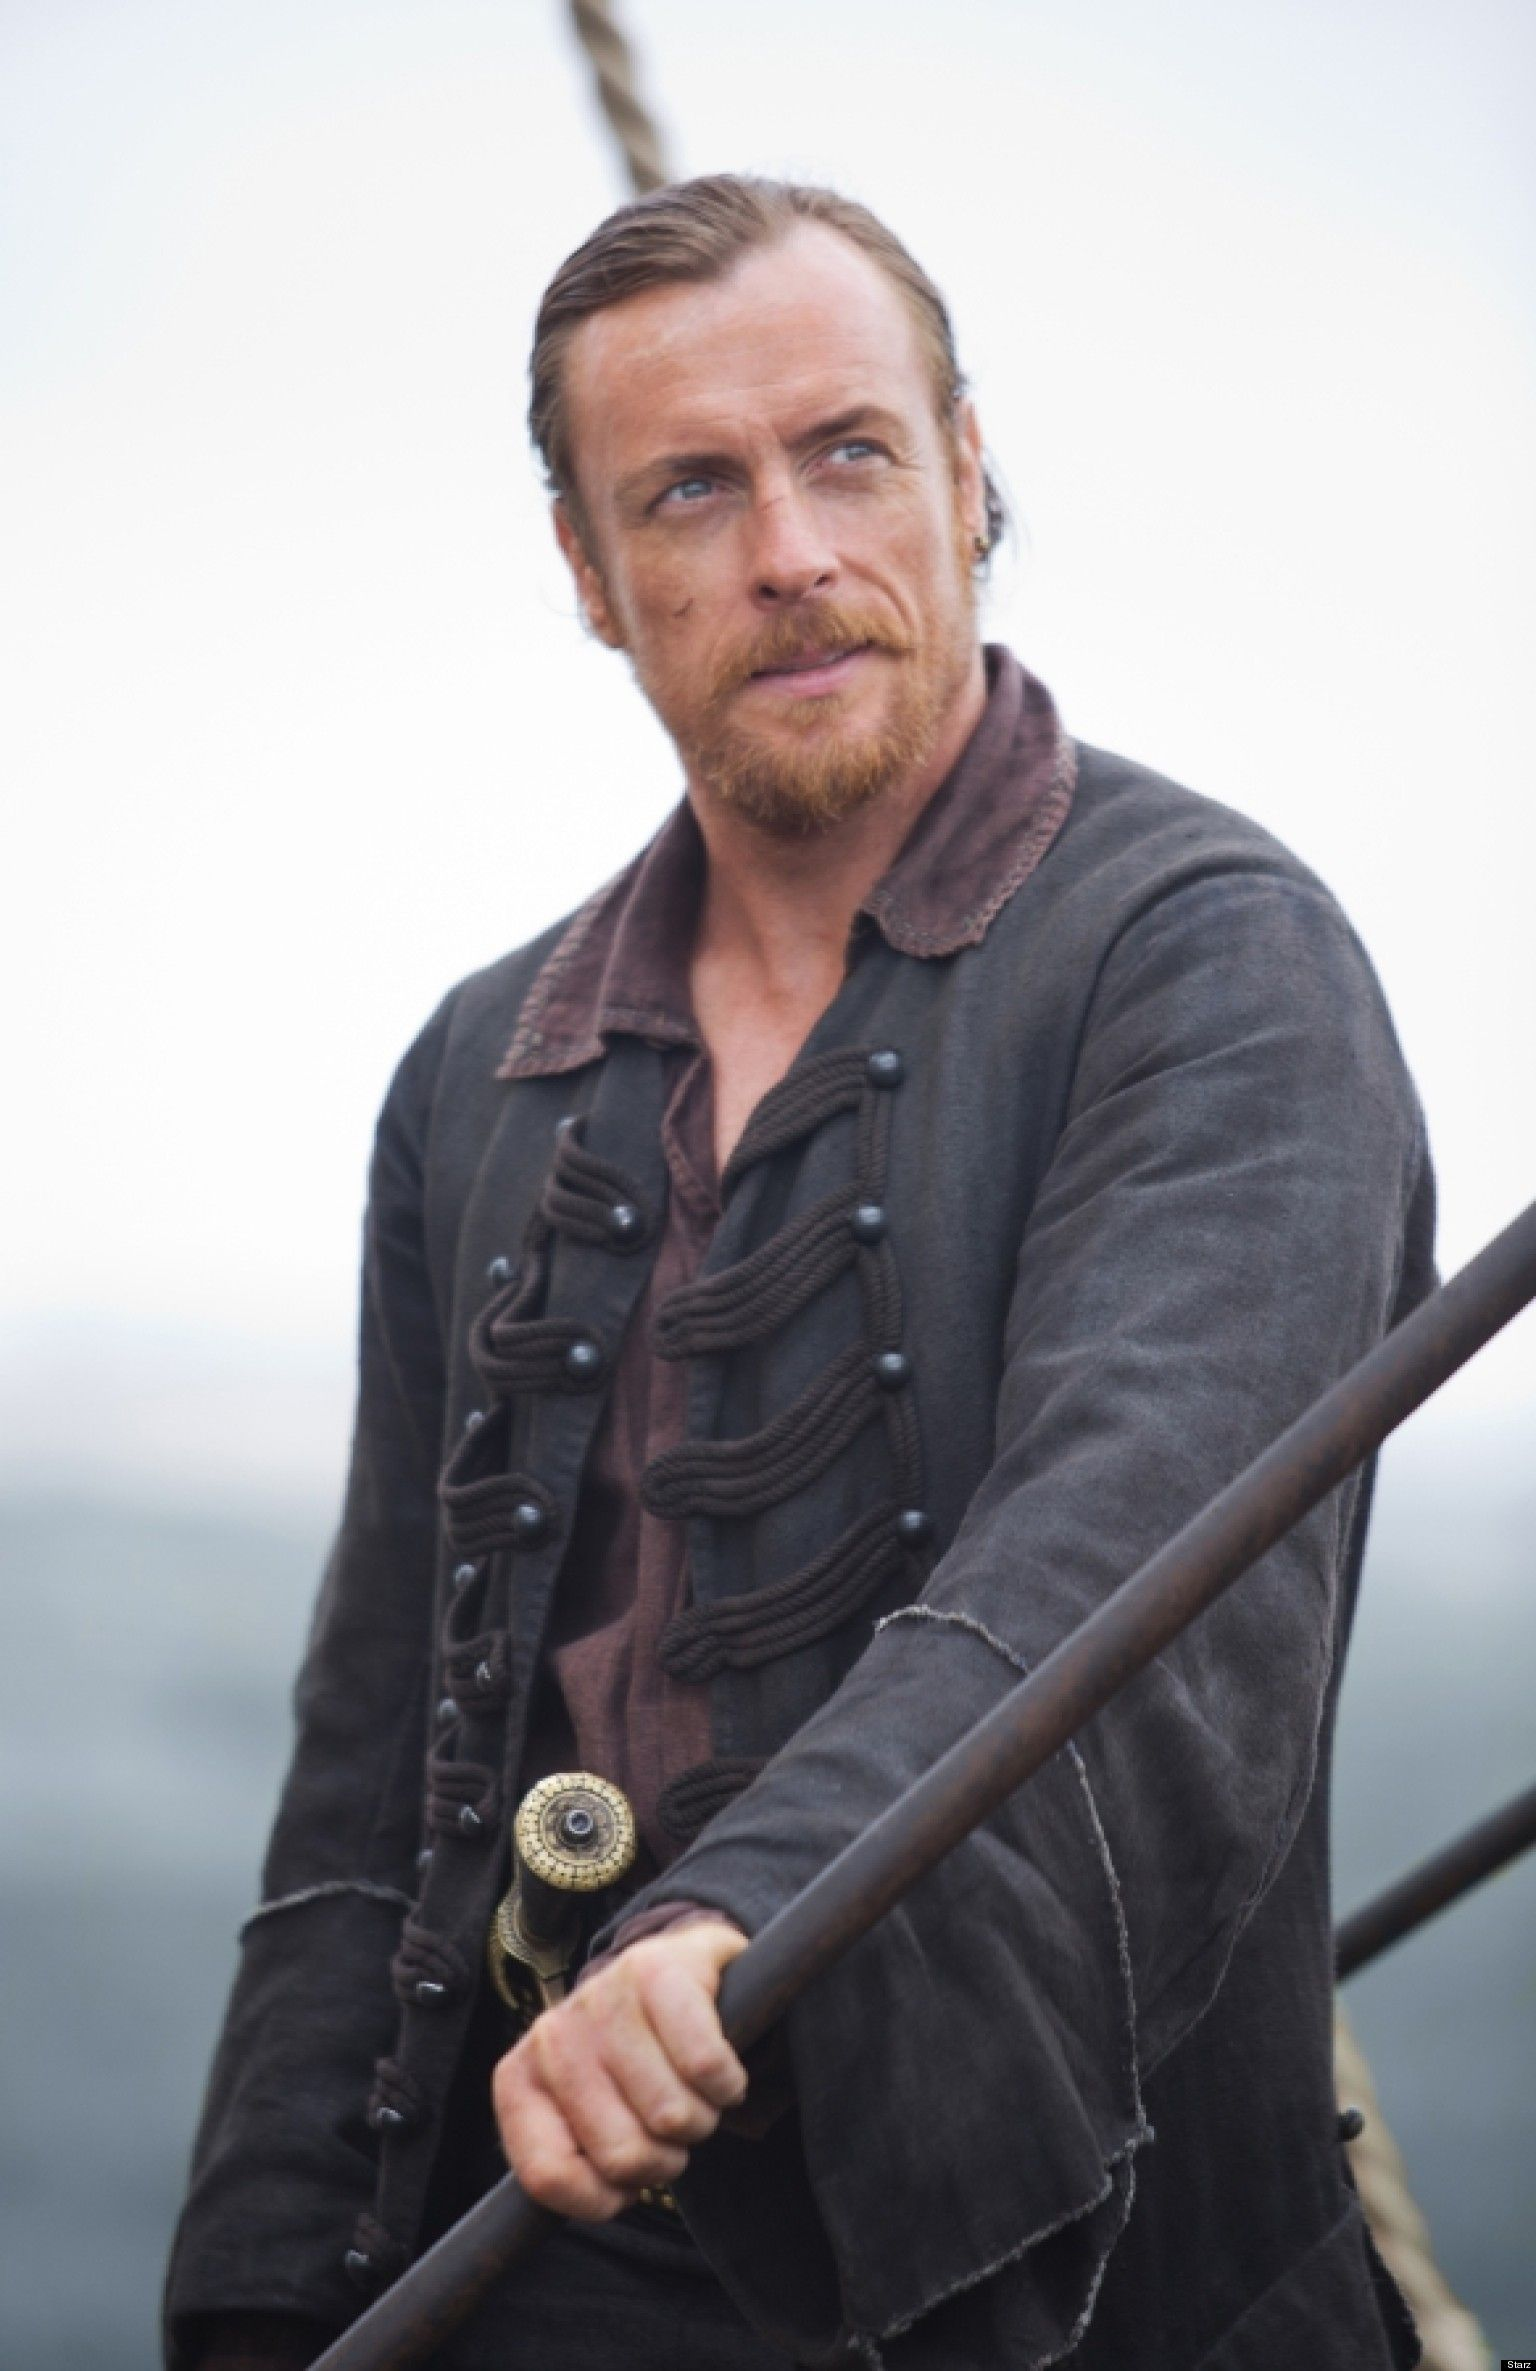 Black sails s3 pirate captain flint leather coat - Black Sails Tv Show Trailer The First Trailer For Michael Bay S Starz Drama Series Black Sails Starring Toby Stephens And Clara Paget